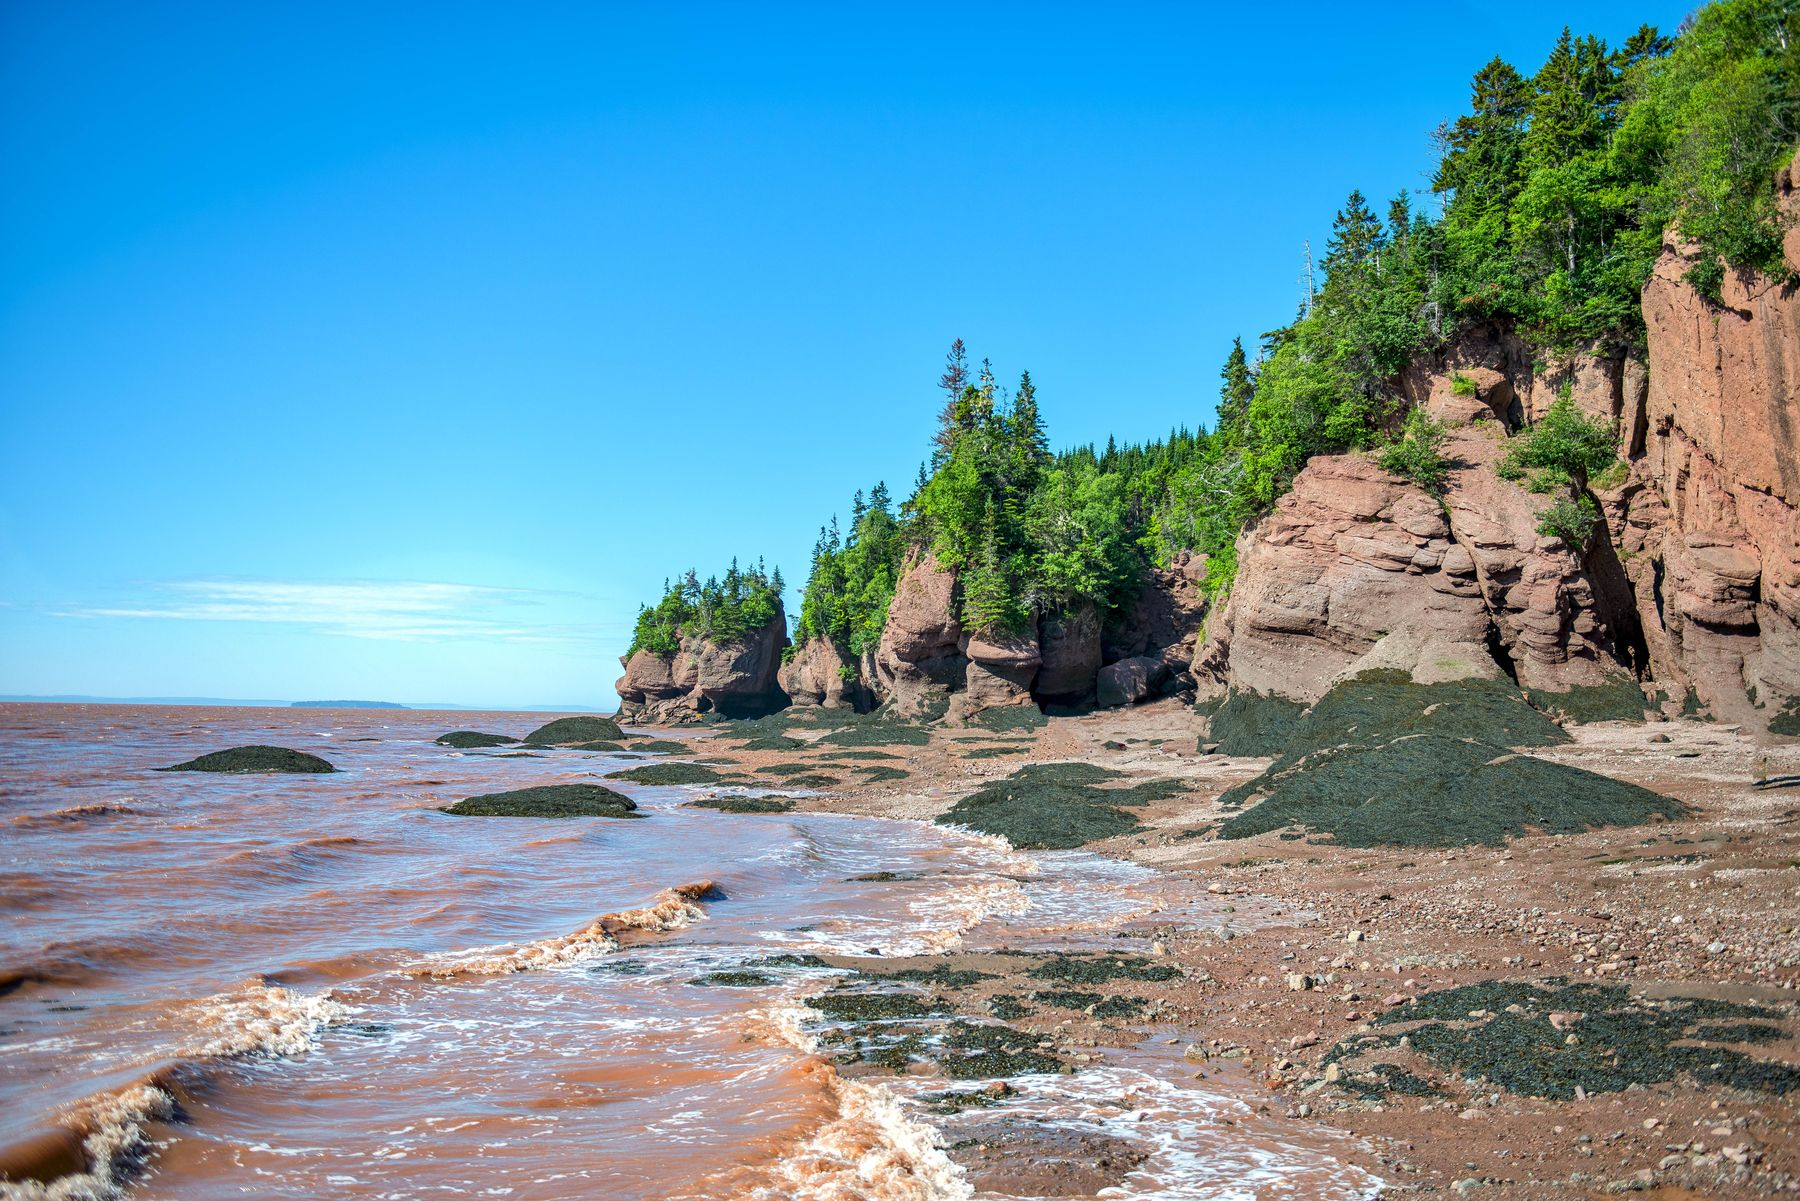 shores of Bay of Fundy in New Brunswick during the day